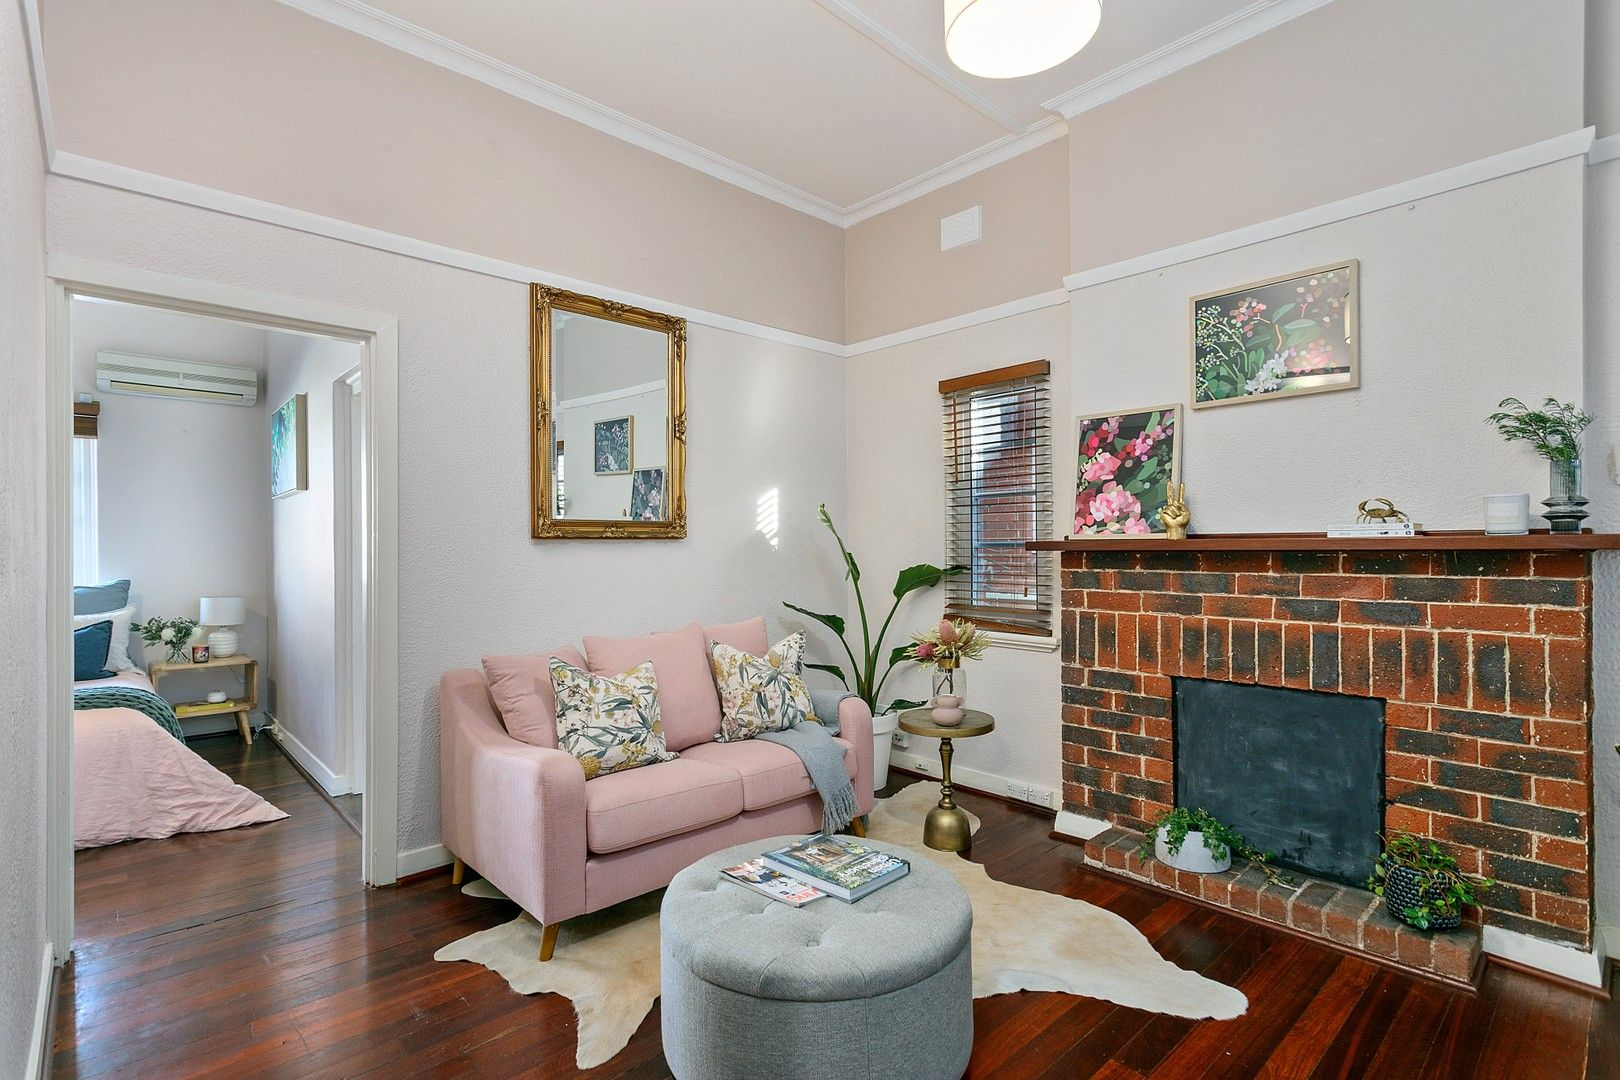 1 bedrooms Apartment / Unit / Flat in 8/598 William Street MOUNT LAWLEY WA, 6050